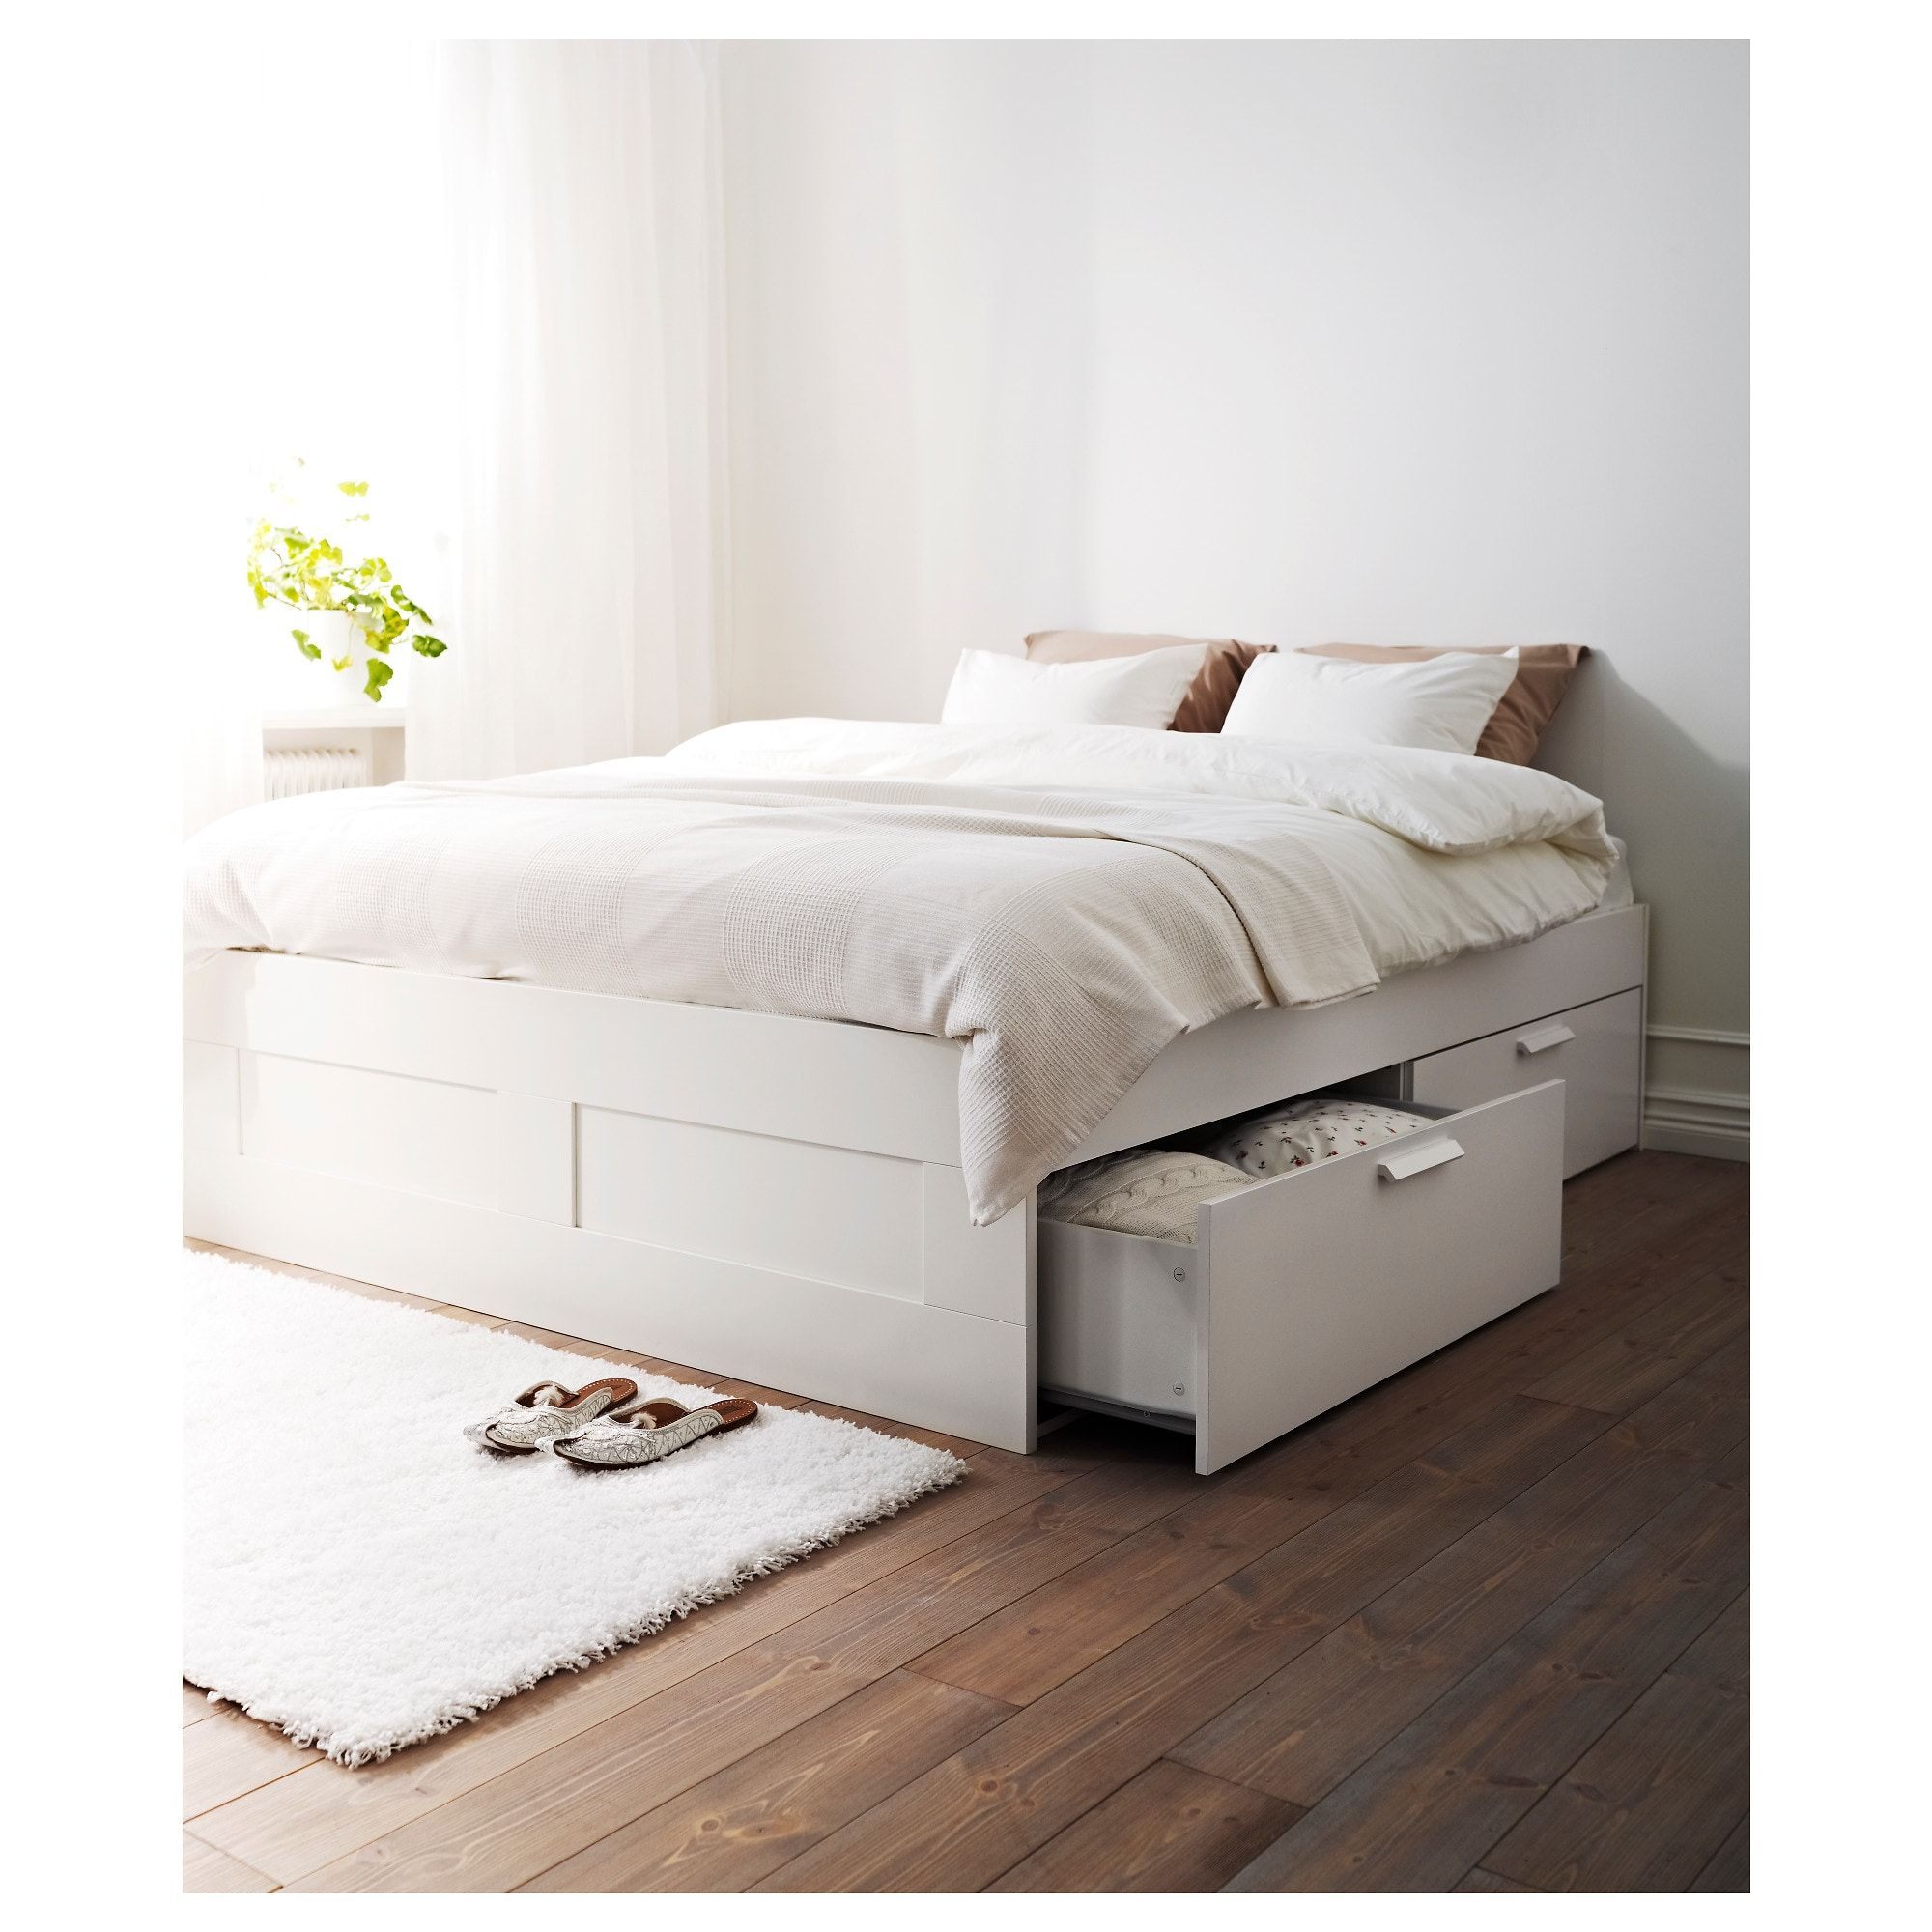 Brimnes Bed Frame With Storage White Luroy Full Ikea Bed Frame With Storage White Bed Frame Brimnes Bed